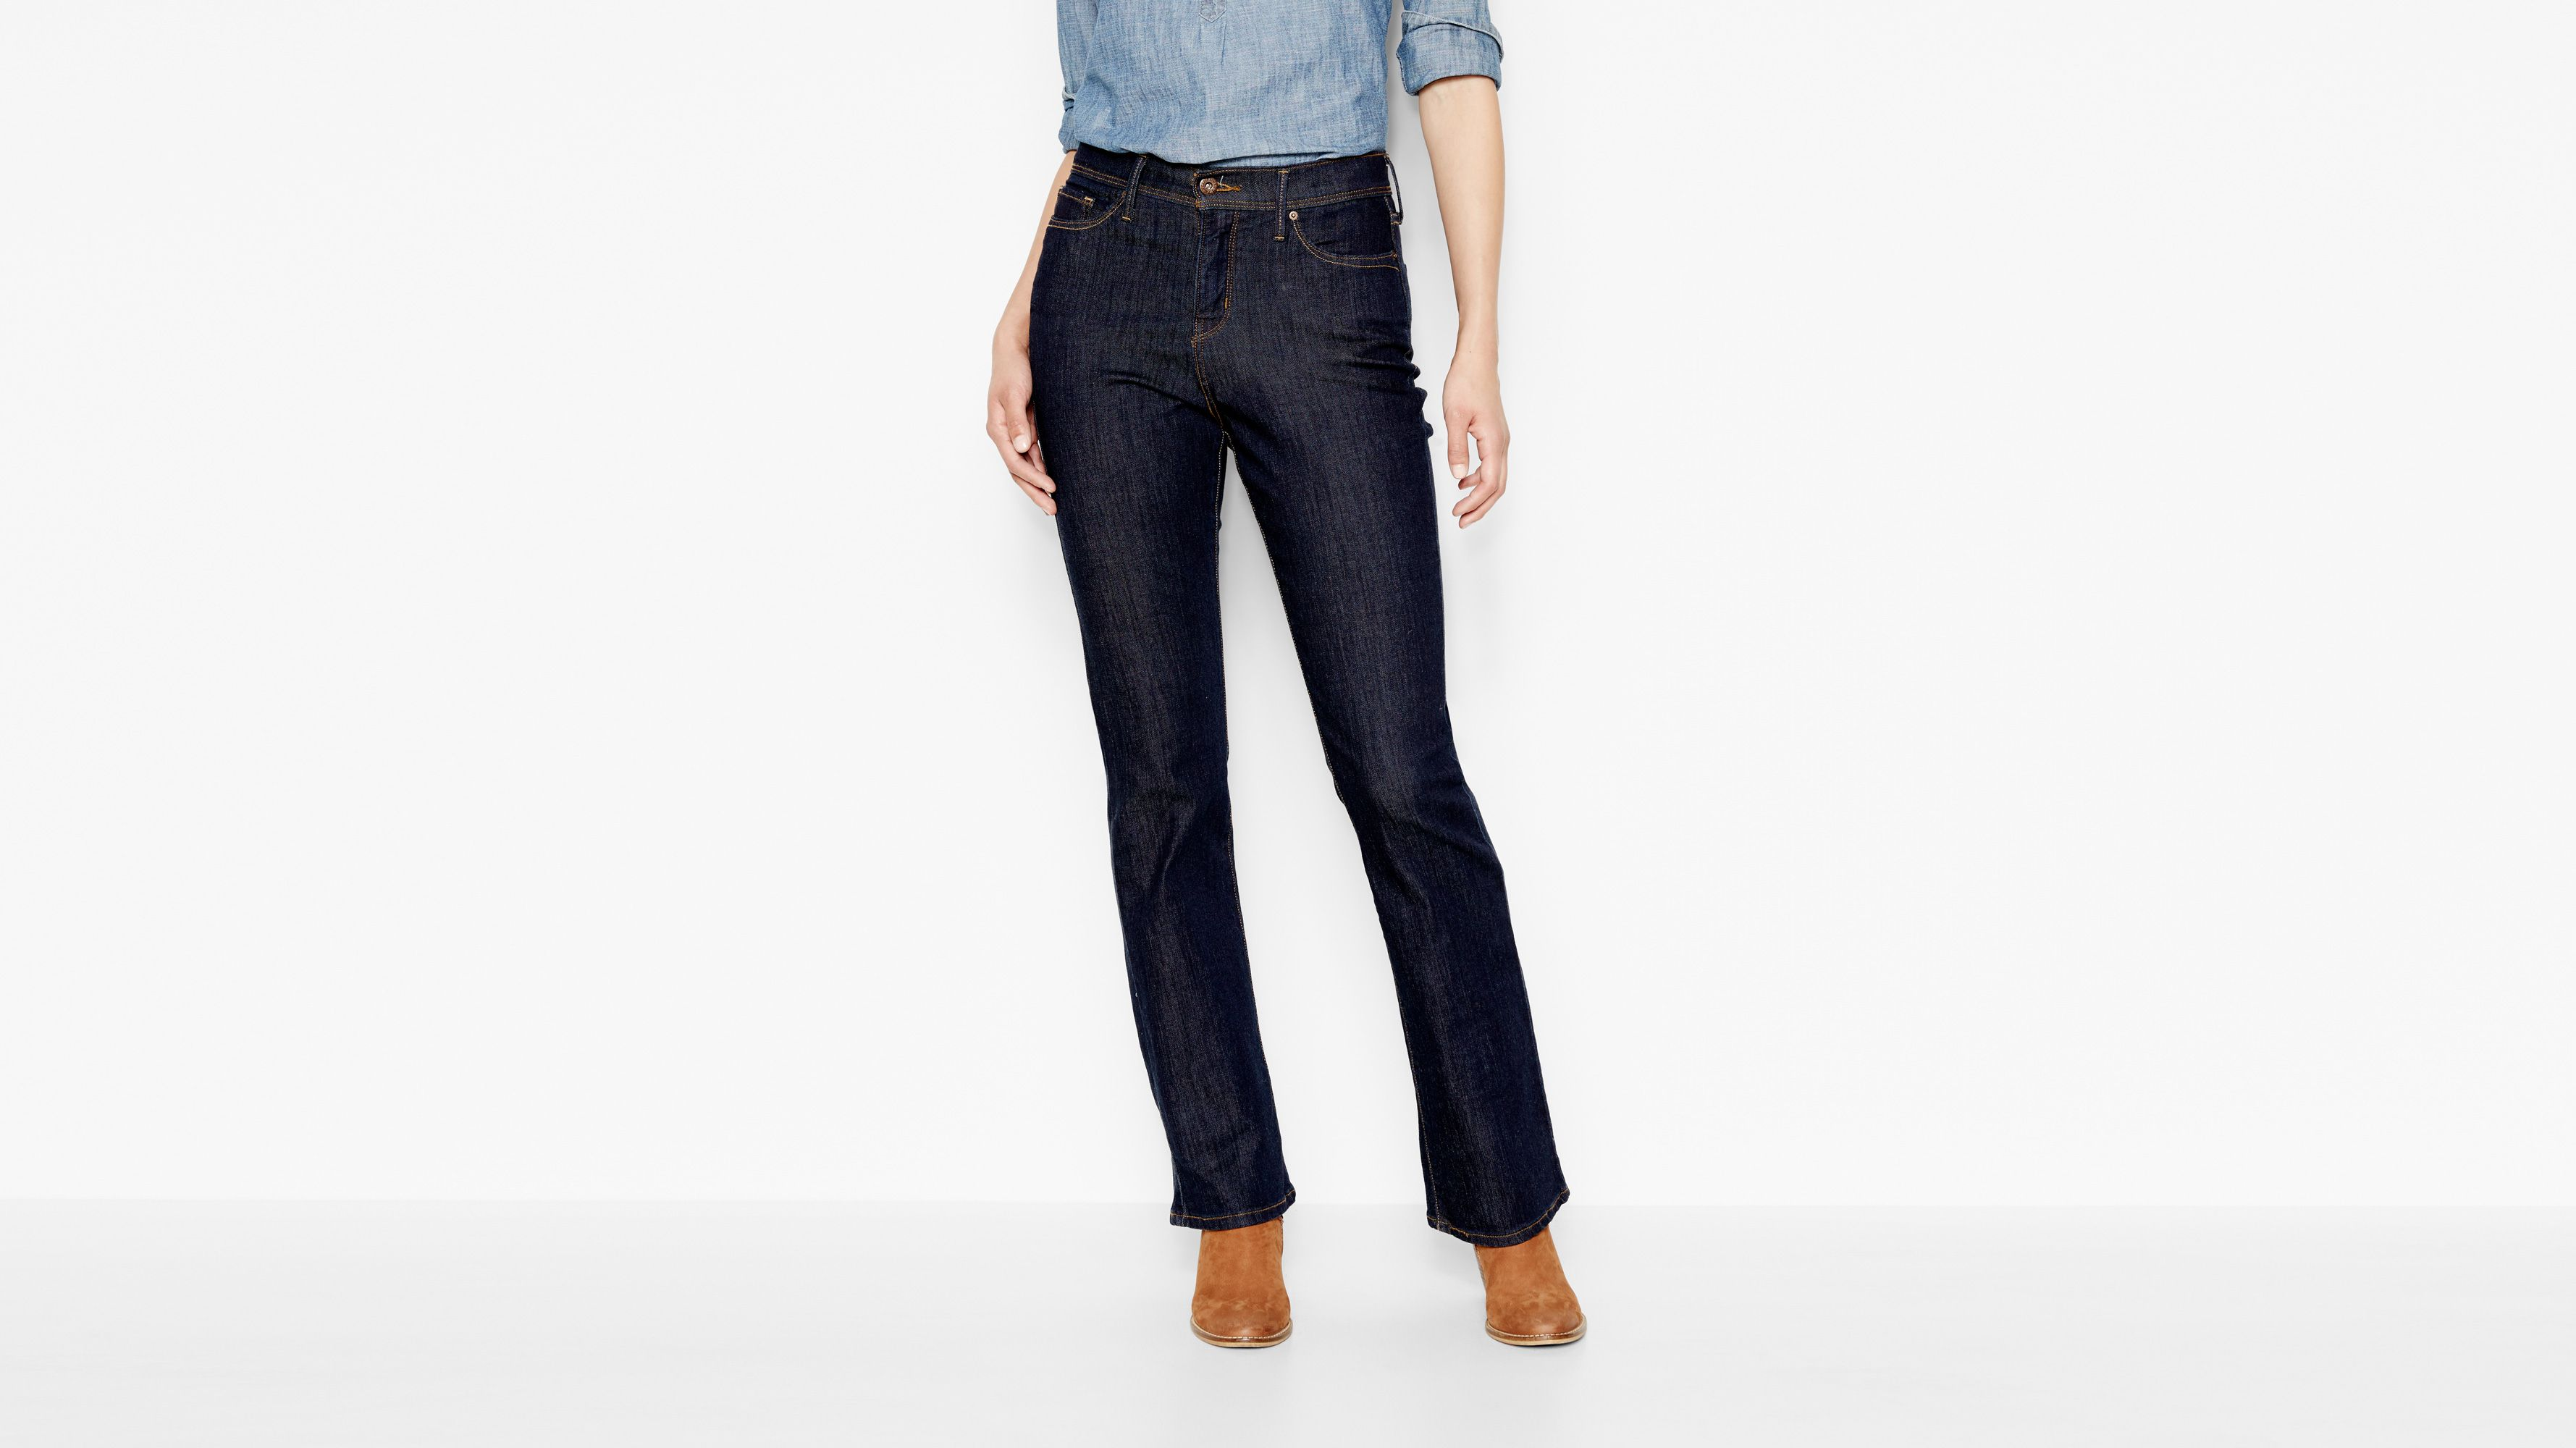 512™ Perfectly Slimming Boot Cut Jeans - Indigo Rinse